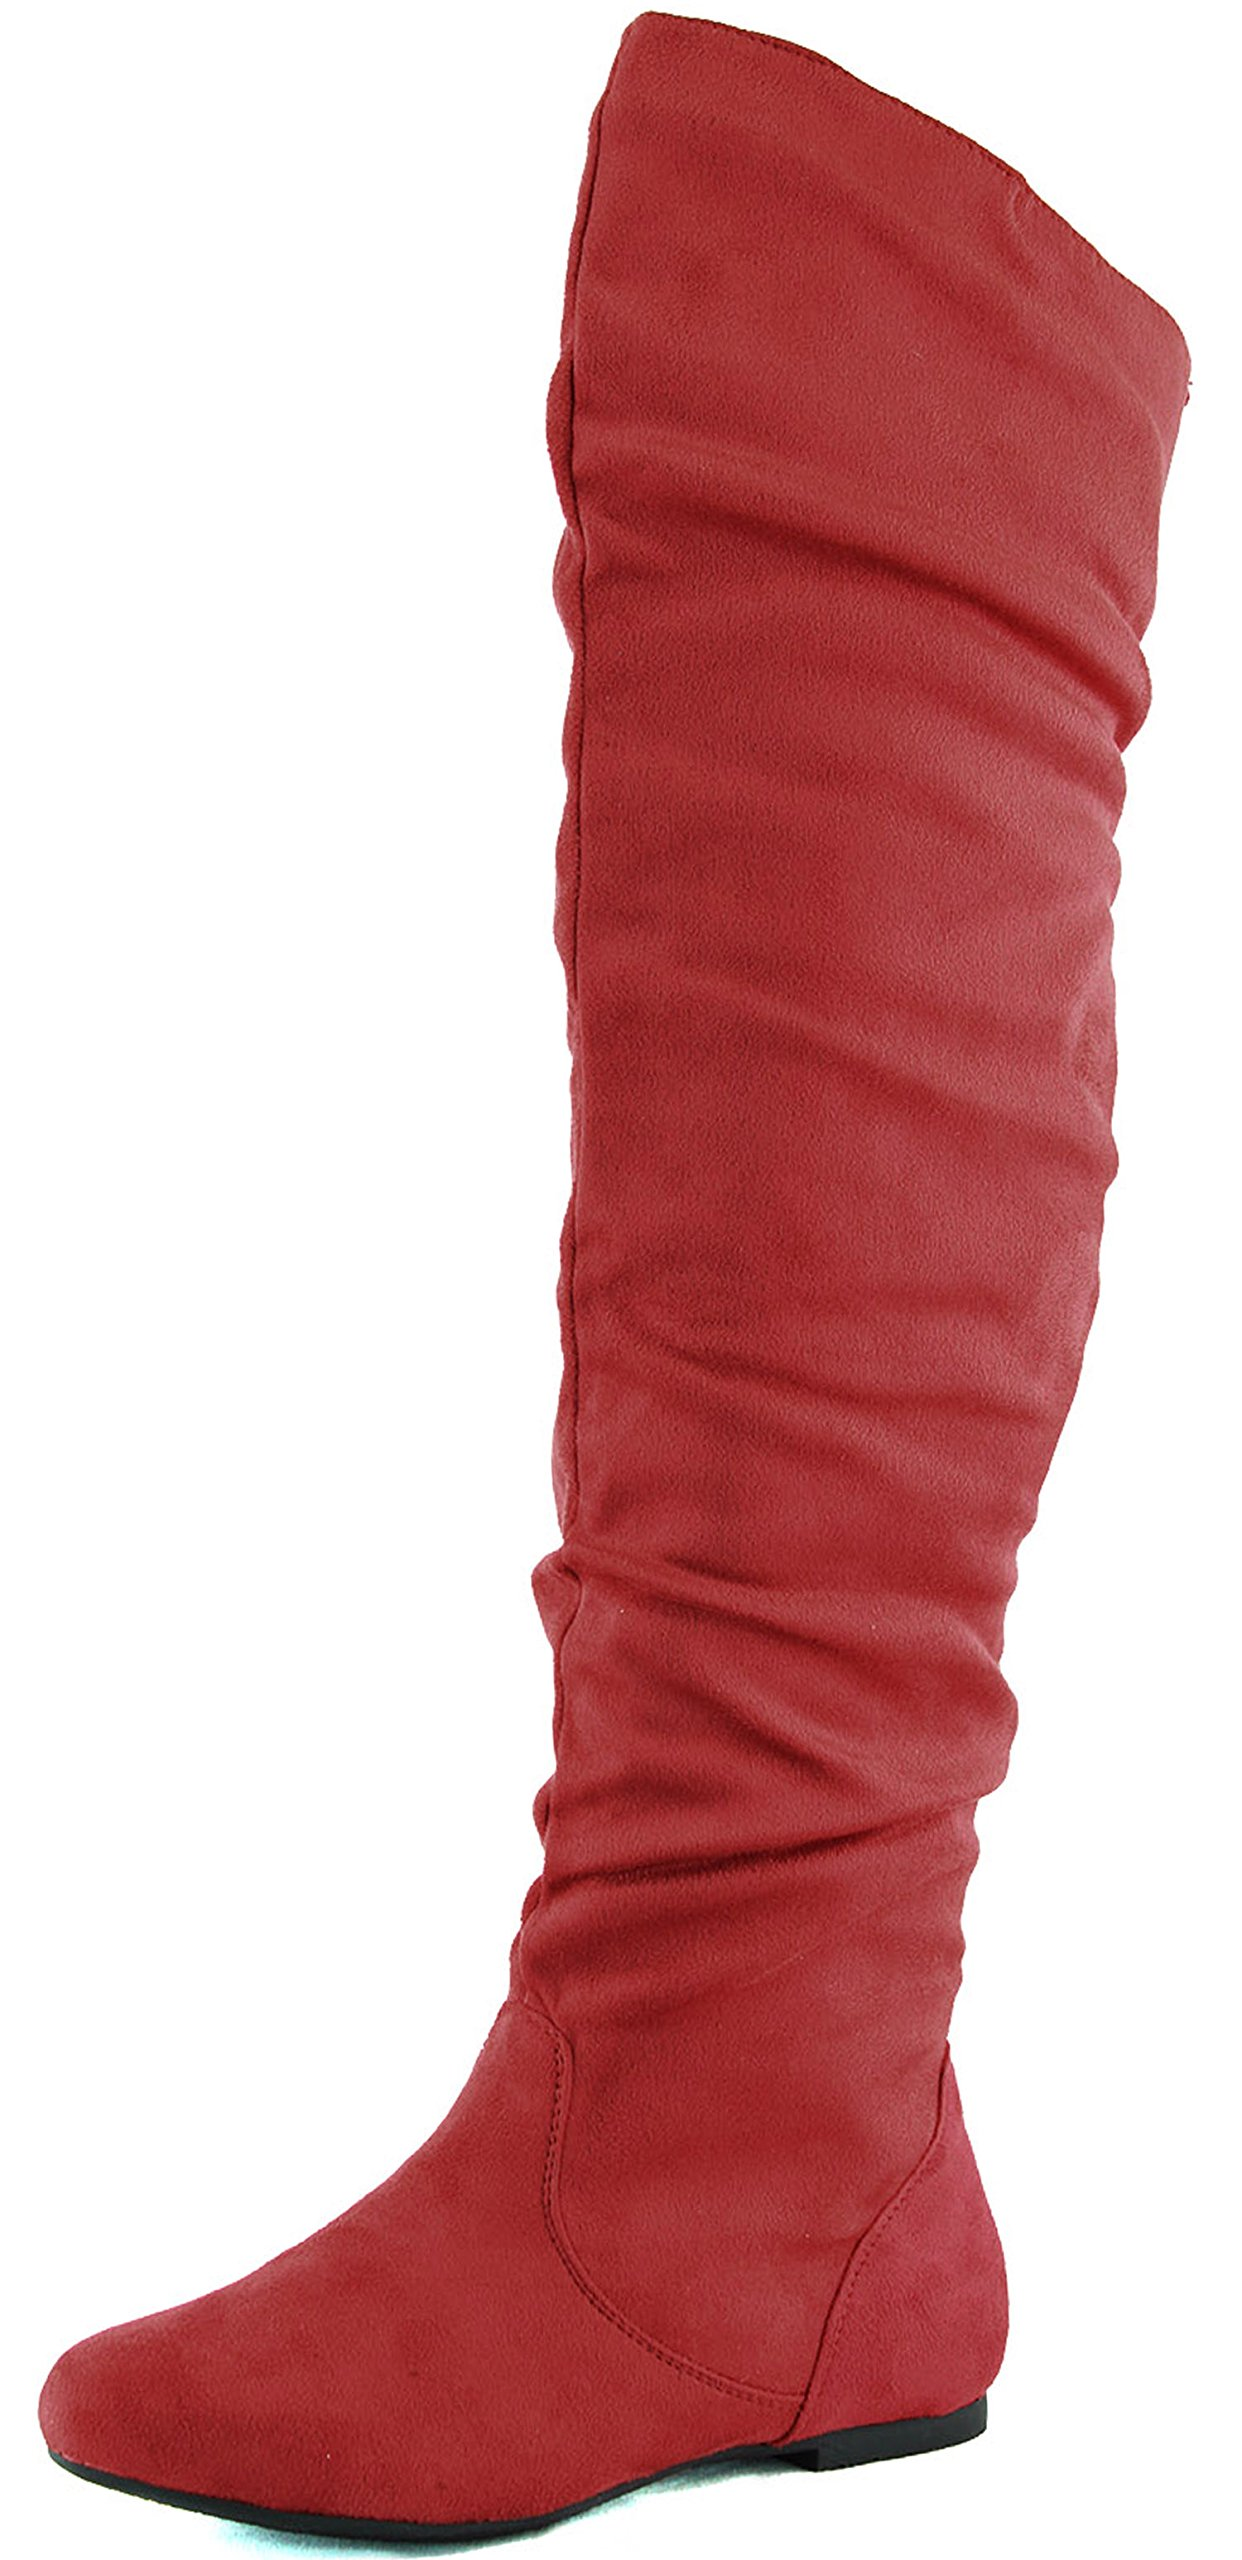 DailyShoes Women's Fashion-Hi Over the Knee Thigh High Boots, Red Sv, 13 B(M)